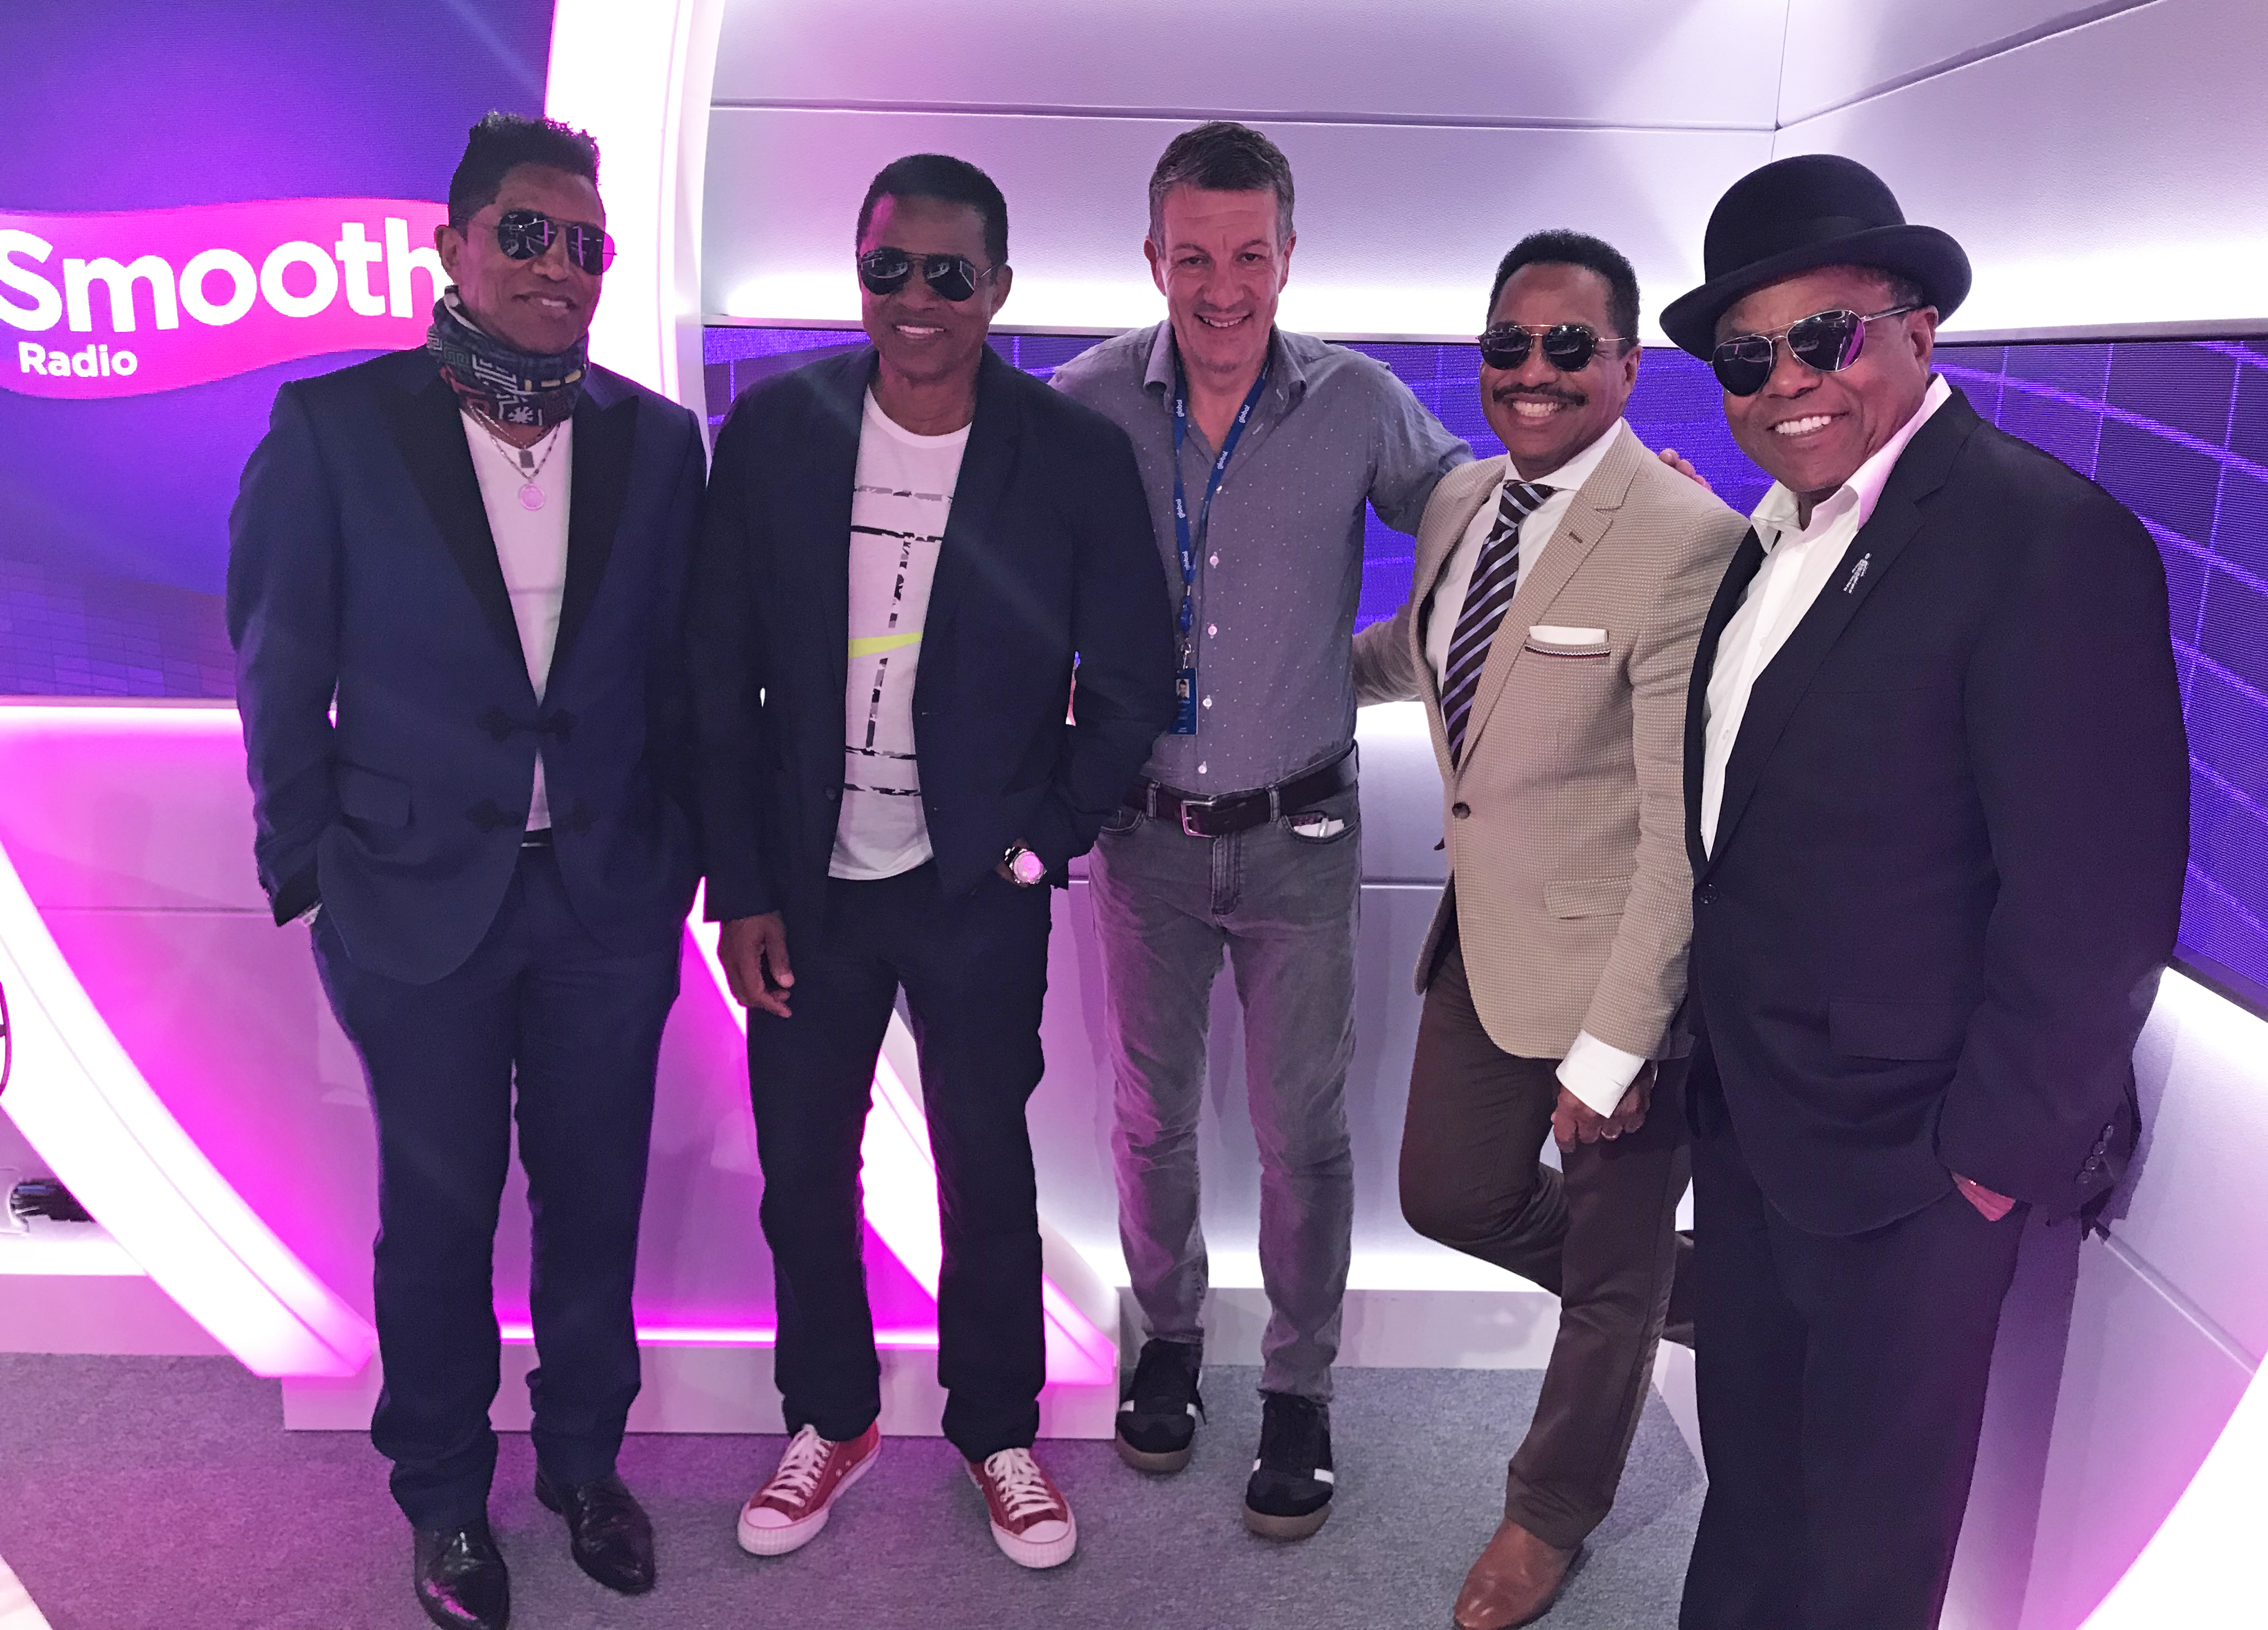 The Jacksons and Smooth